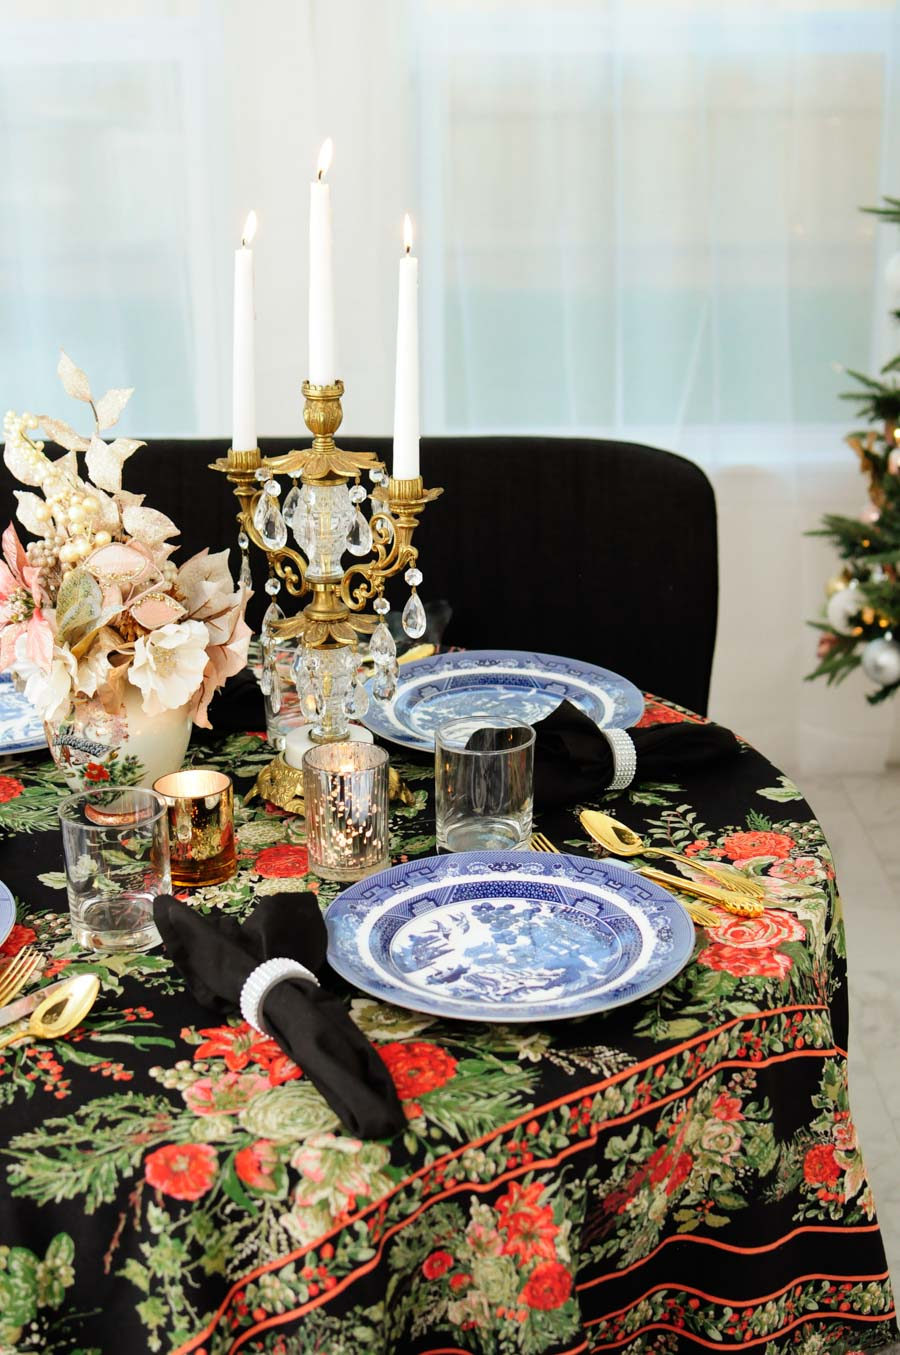 A small dining area or breakfast nook gets glammed up for the holidays with touches of blush, gold, and silver, plus florals and chinoiserie and vintage home decor elements.